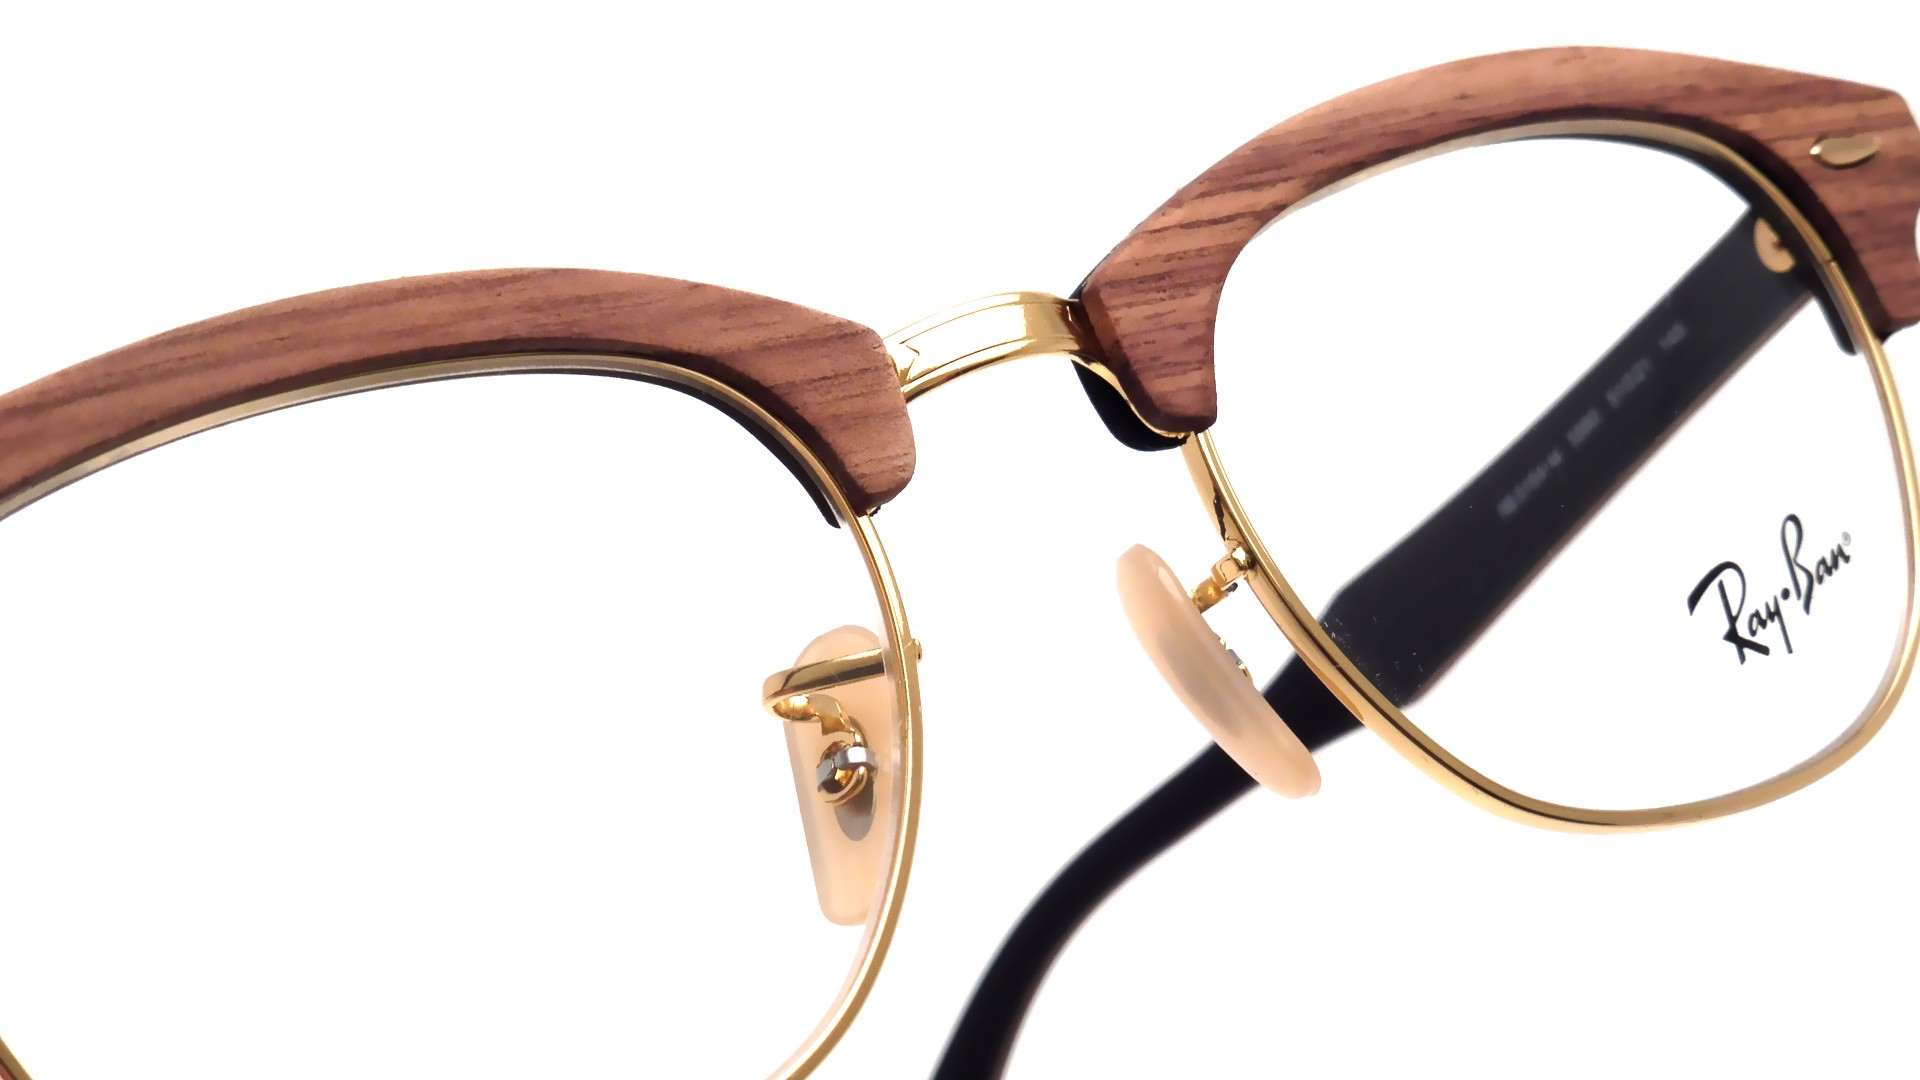 6ff5c362ece Ray Ban Clubmaster Wood Frame - Bitterroot Public Library